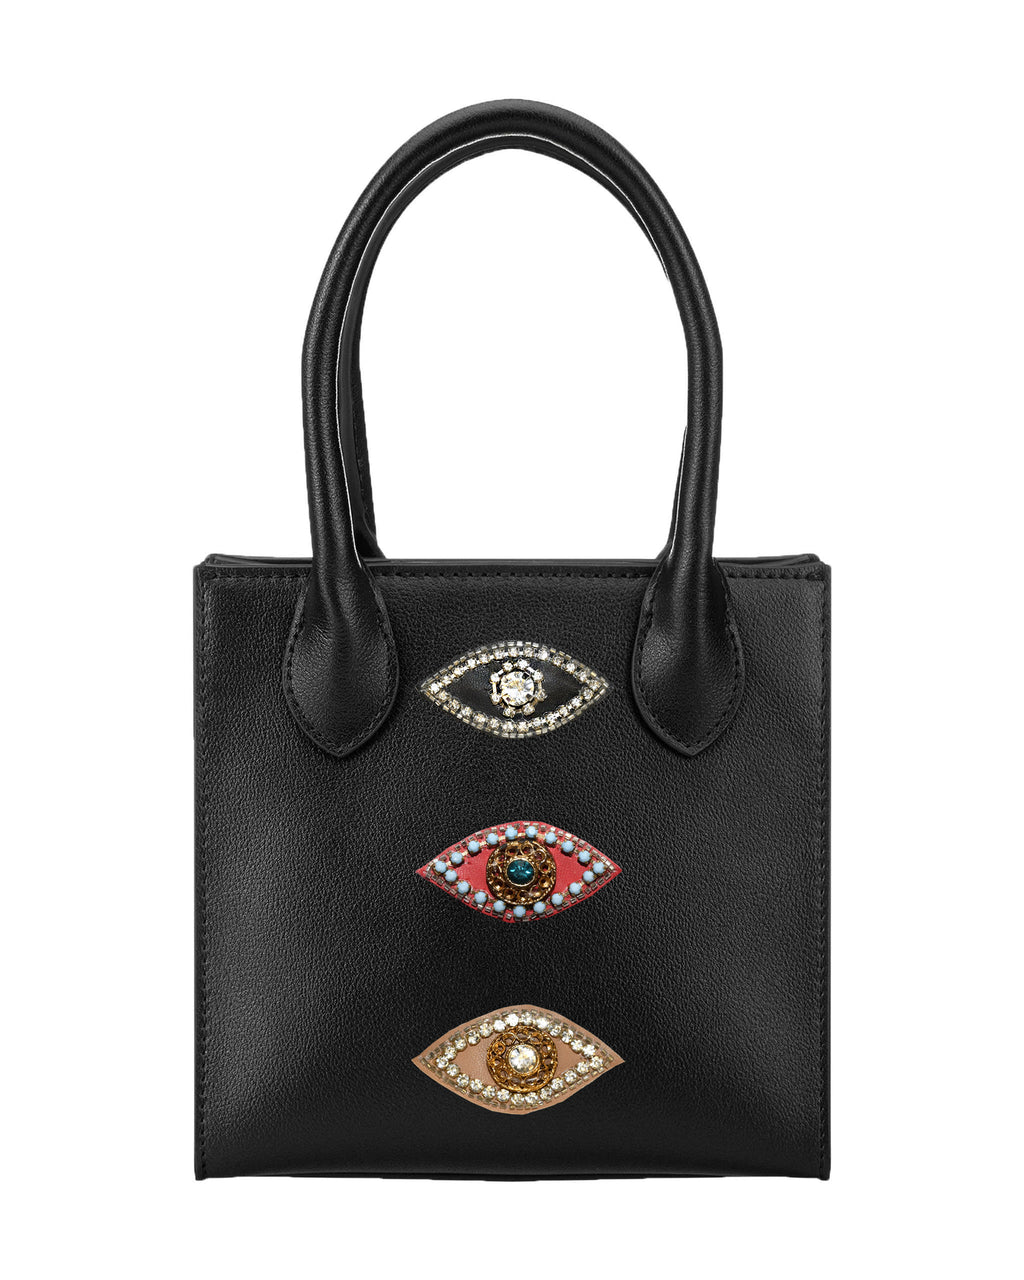 CA00002 - EVIL EYE NIKI MINI HANDBAG - accessories - bags - Made a big statement with our mini bag. Our classic Niki mini bag is updated with our signature jeweled evil eye patches. Feauturing two inside pockets, a removable and adustable strap and hidden magnetic button closure.